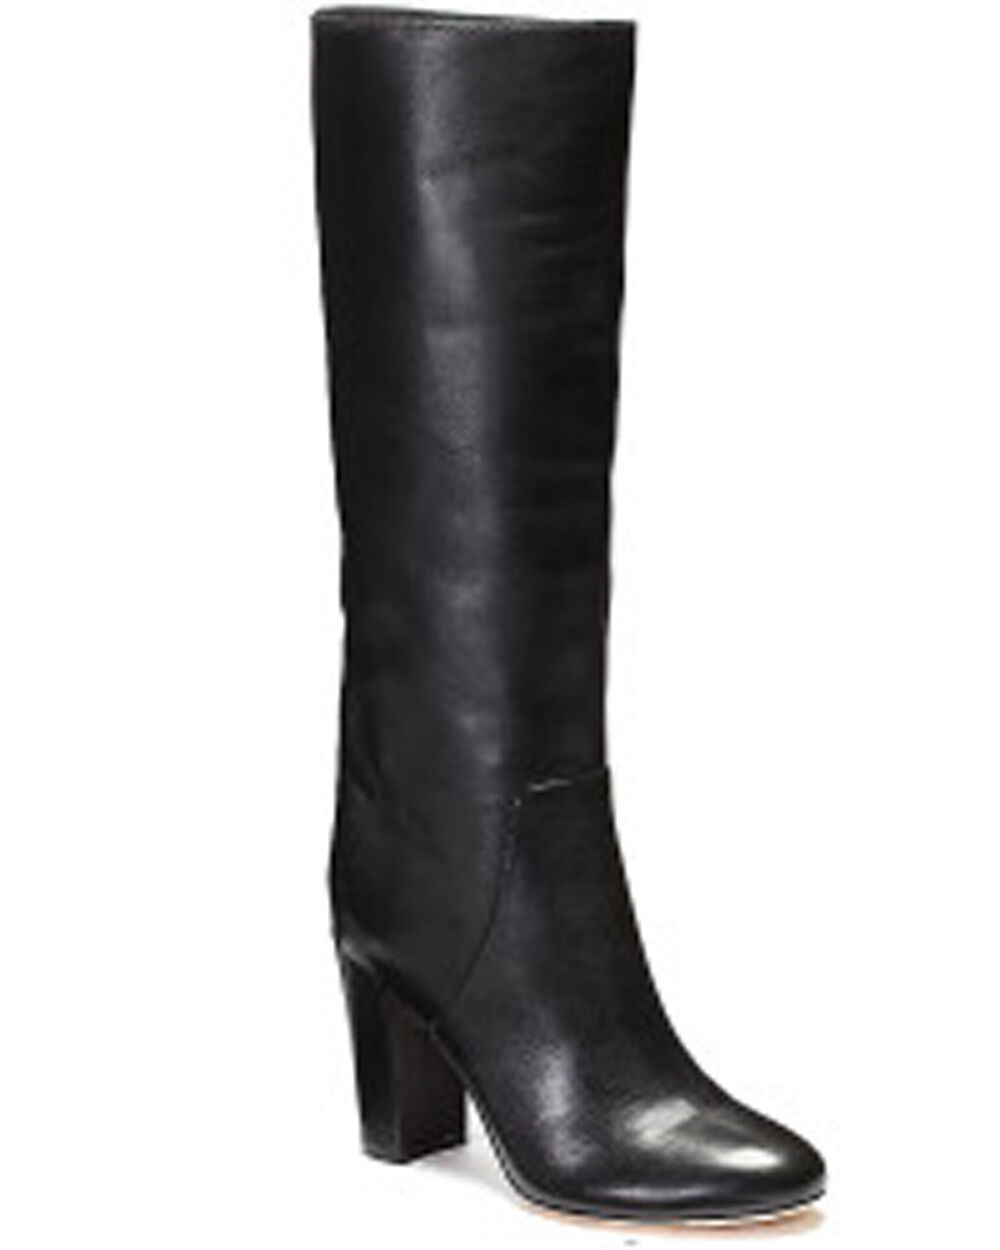 Vince Camuto VC Signature Women's Tiona Black Leather Boots  450 Wide Calf Style